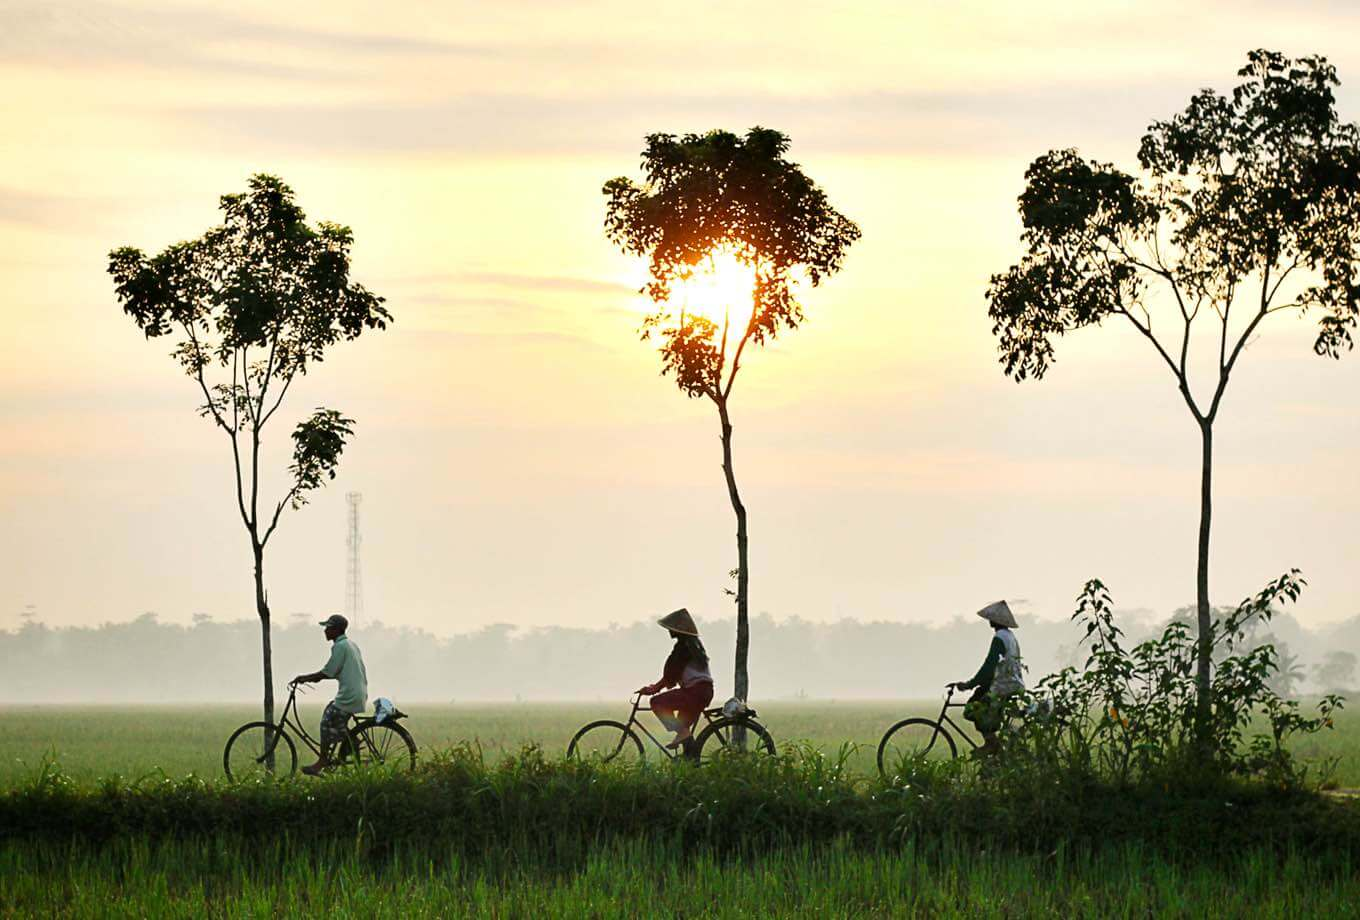 Three villagers riding bikes through a green ricefield